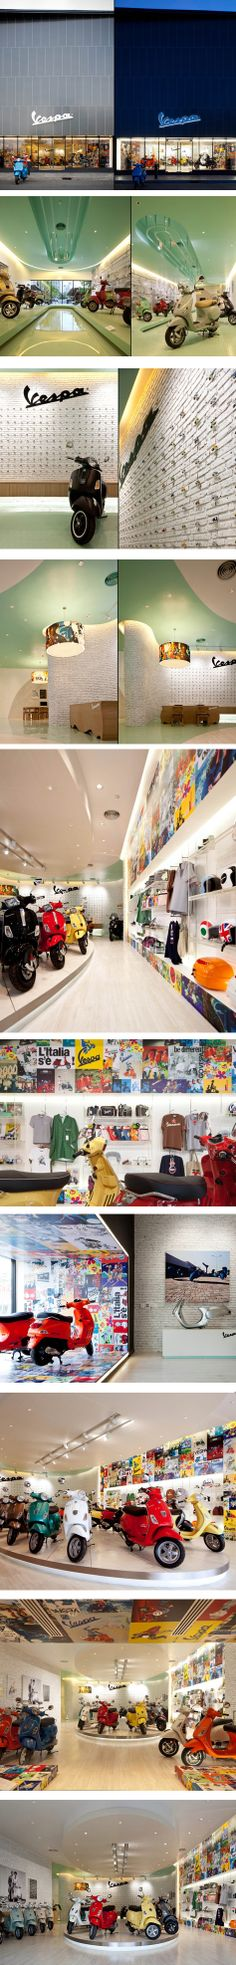 Vespa Gallery by Supermachine Studio, Bangkok – Thailand.